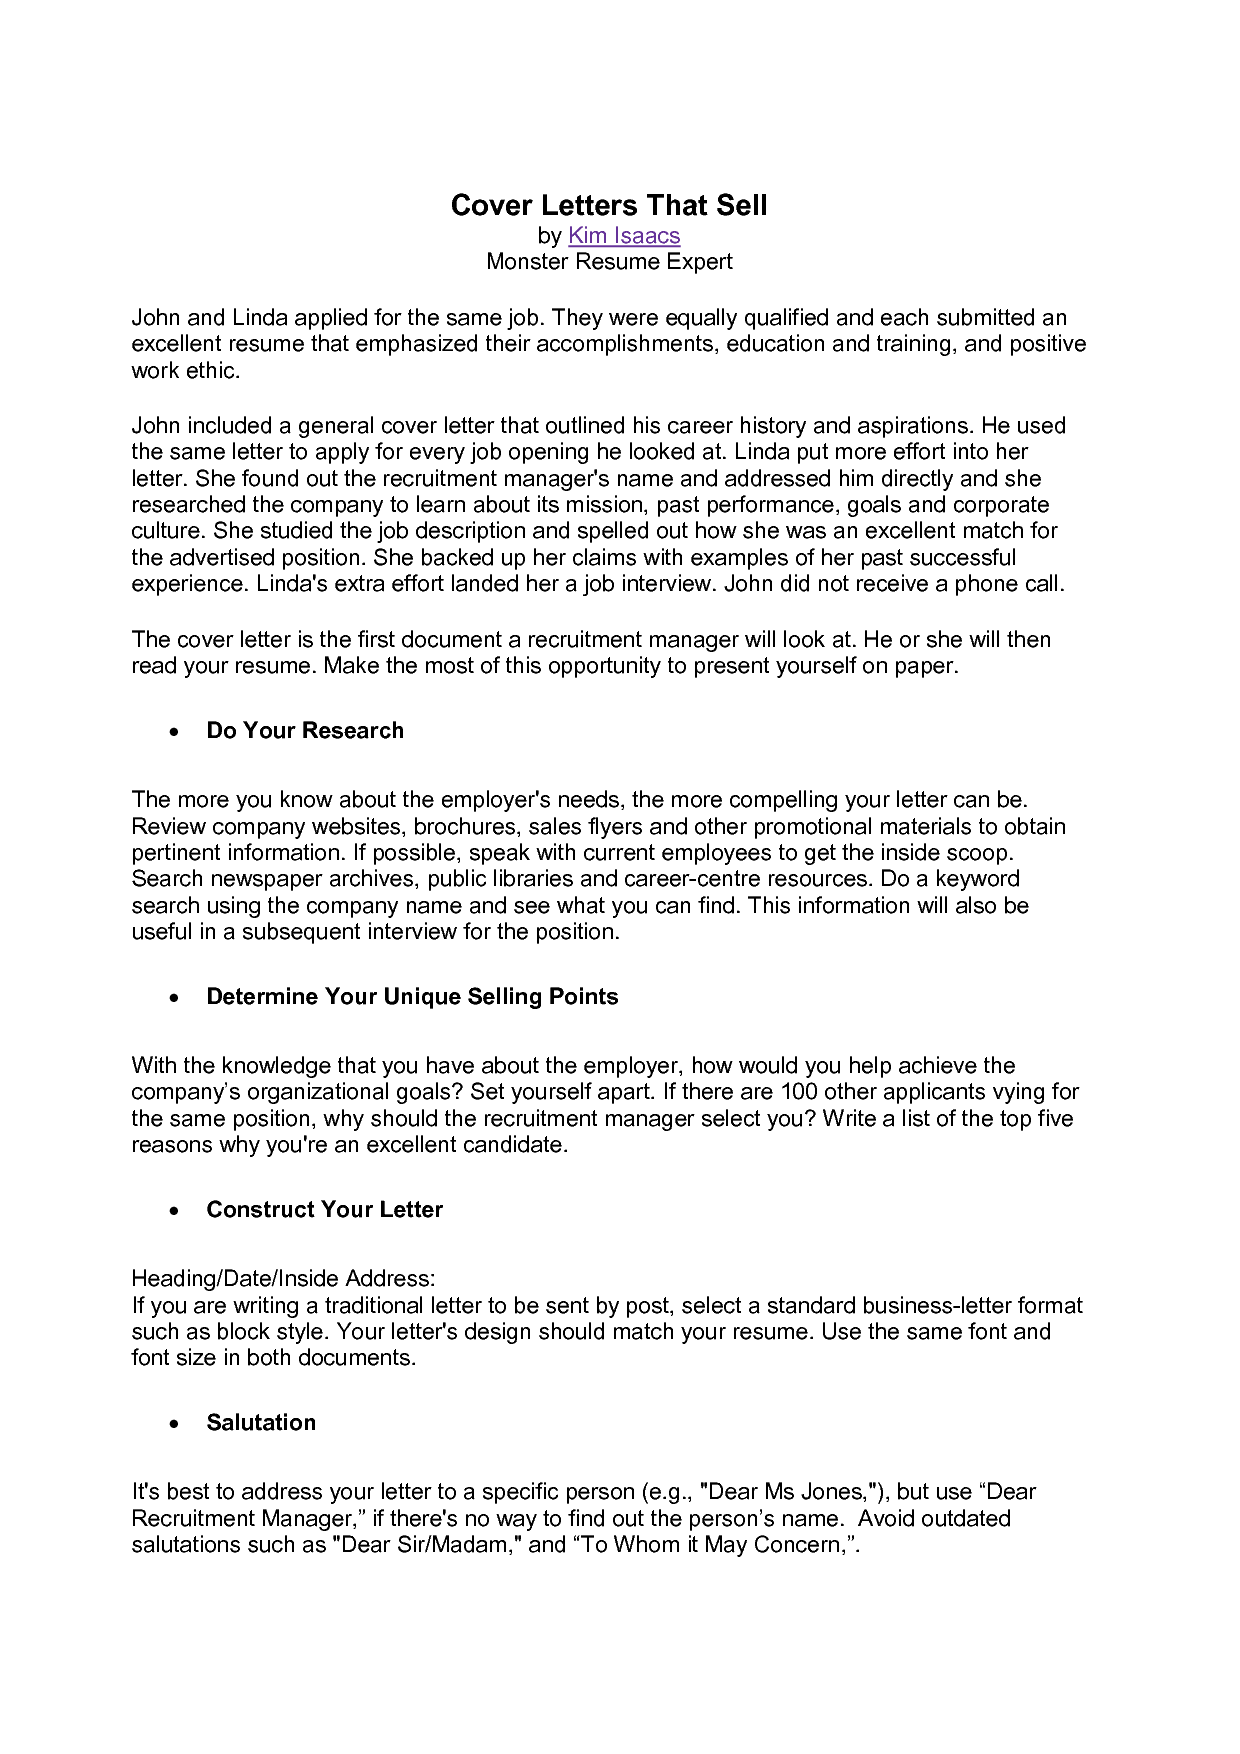 Monster Cover Letter Free Download Monster Cover Letter, Monster Cover  Letter Template, Monster Cover  Free Cover Letter Downloads